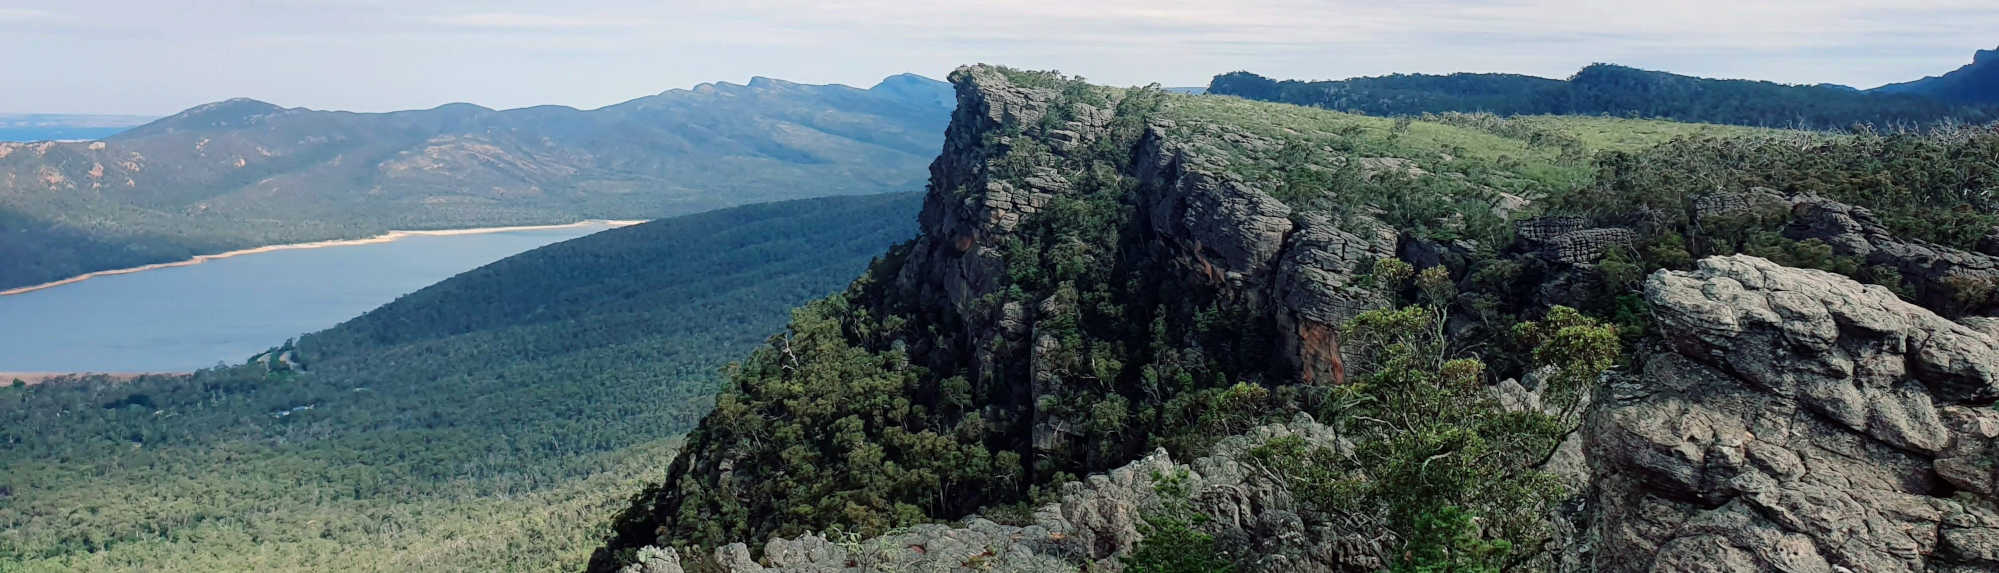 Best Things to see in the Grampians